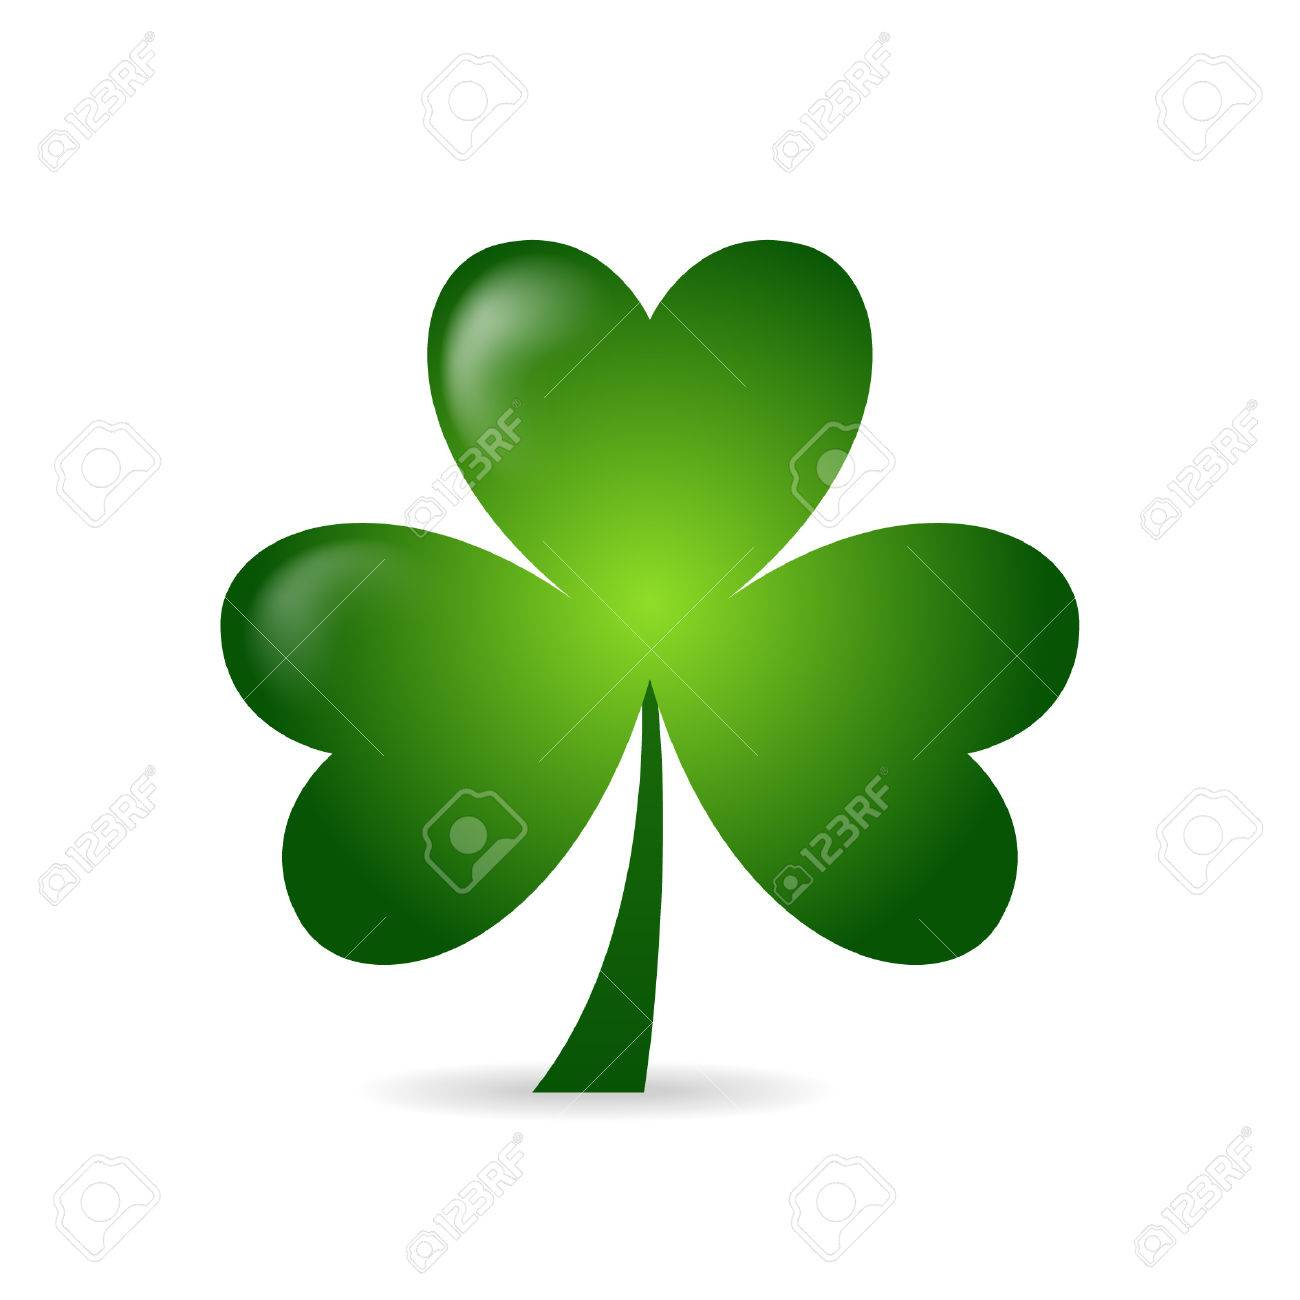 1300x1300 Irish Shamrock Ideal For St Patrick's Day Isolated Over White